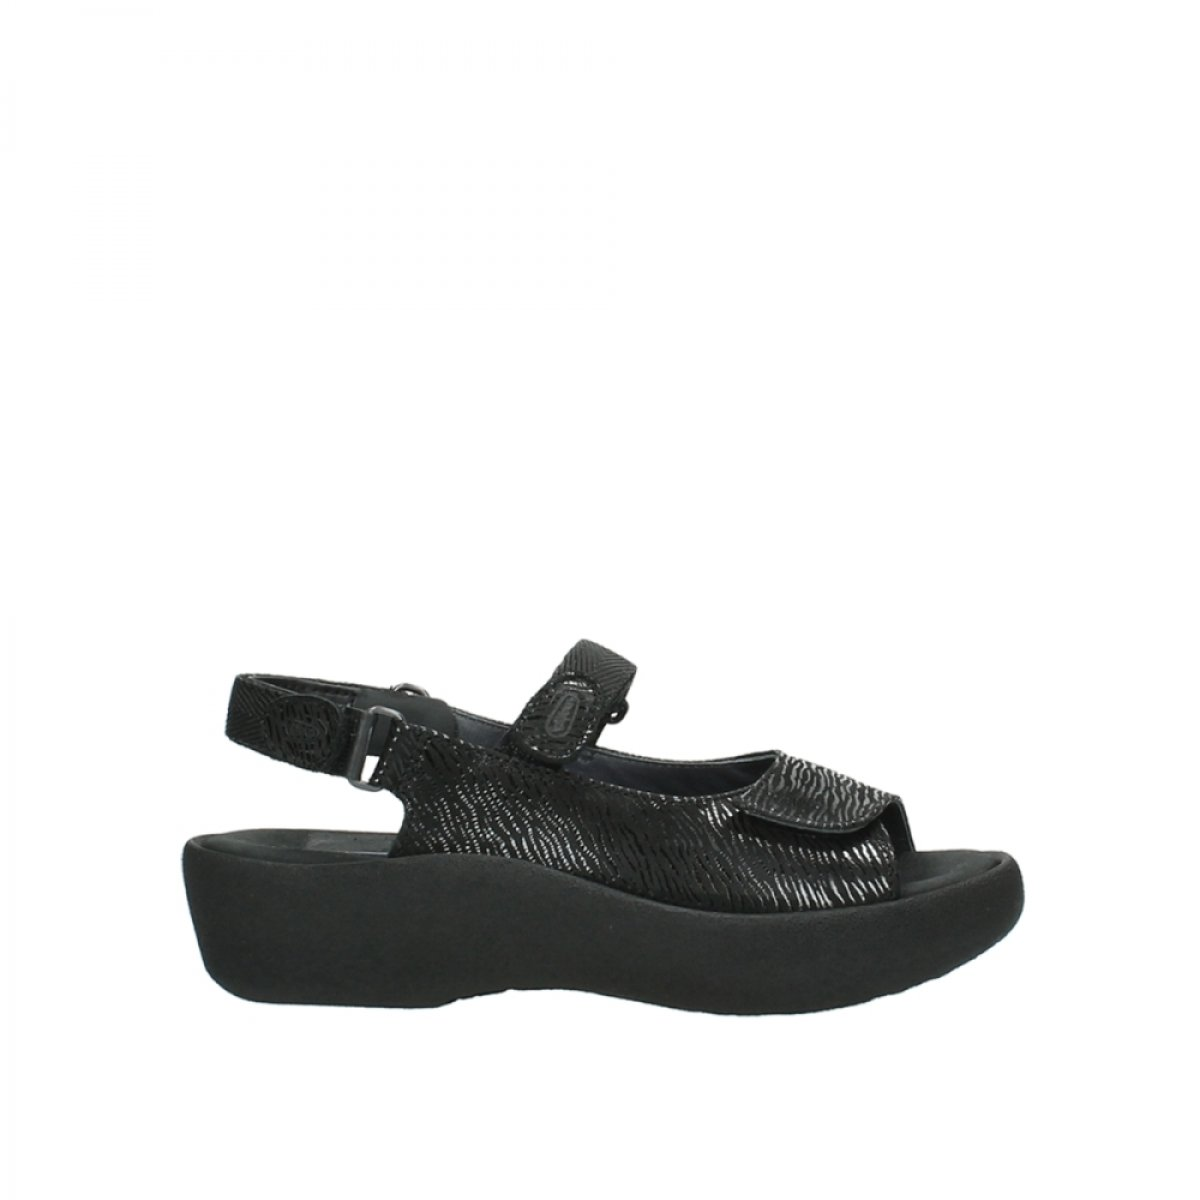 Wolky Womens 3204 Jewel Leather Sandals 43 EU|700 black canals